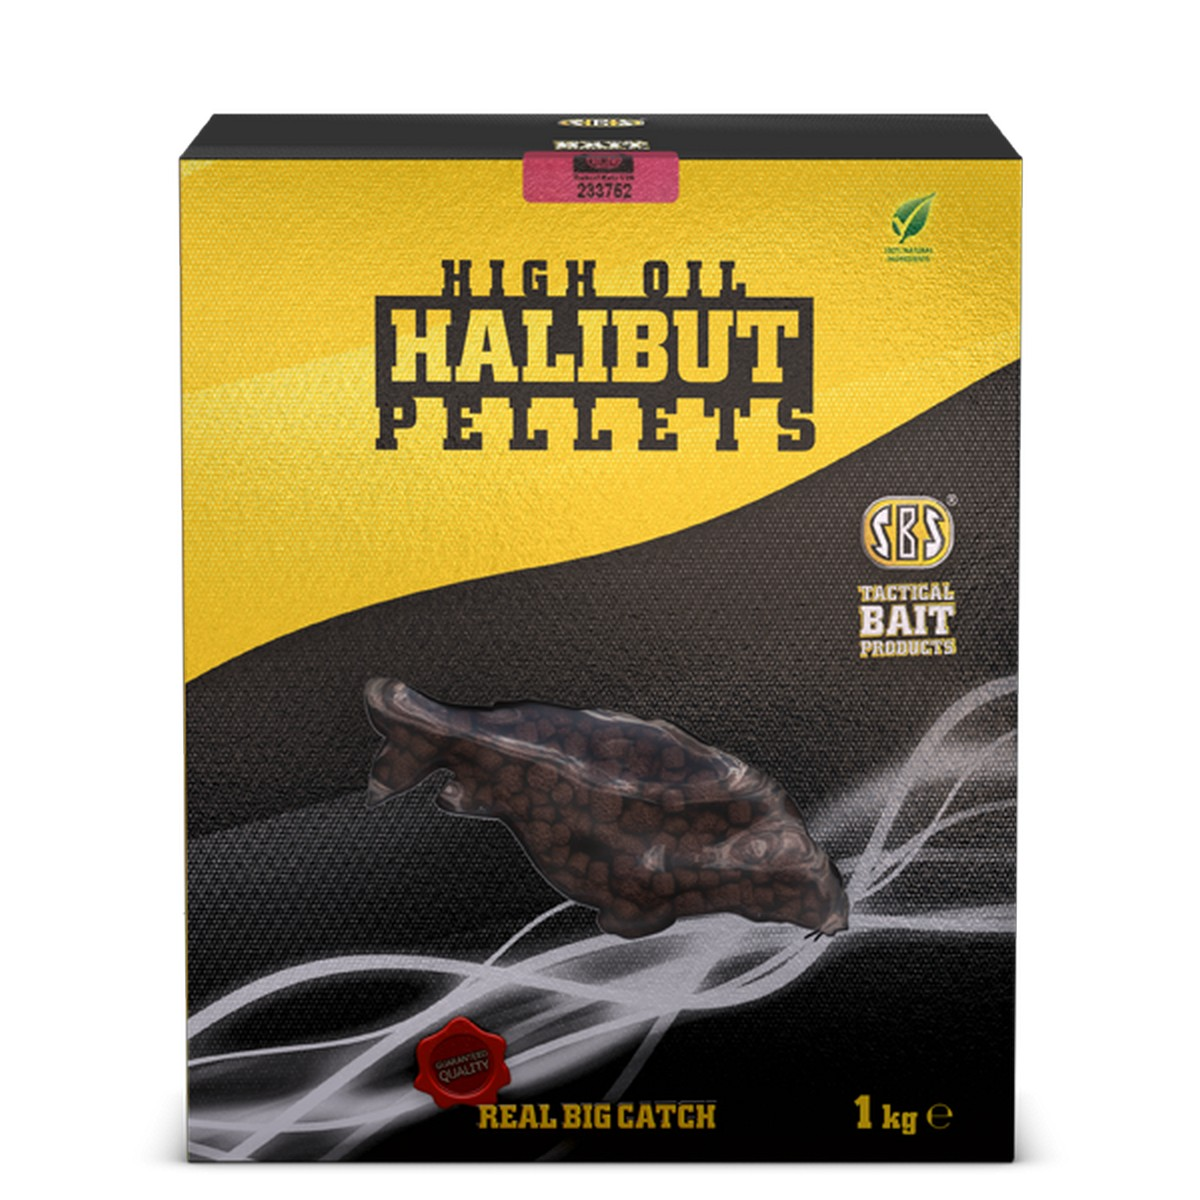 SBS HIGH OIL HALIBUT PELLETS FISH 1 KG 4 MM